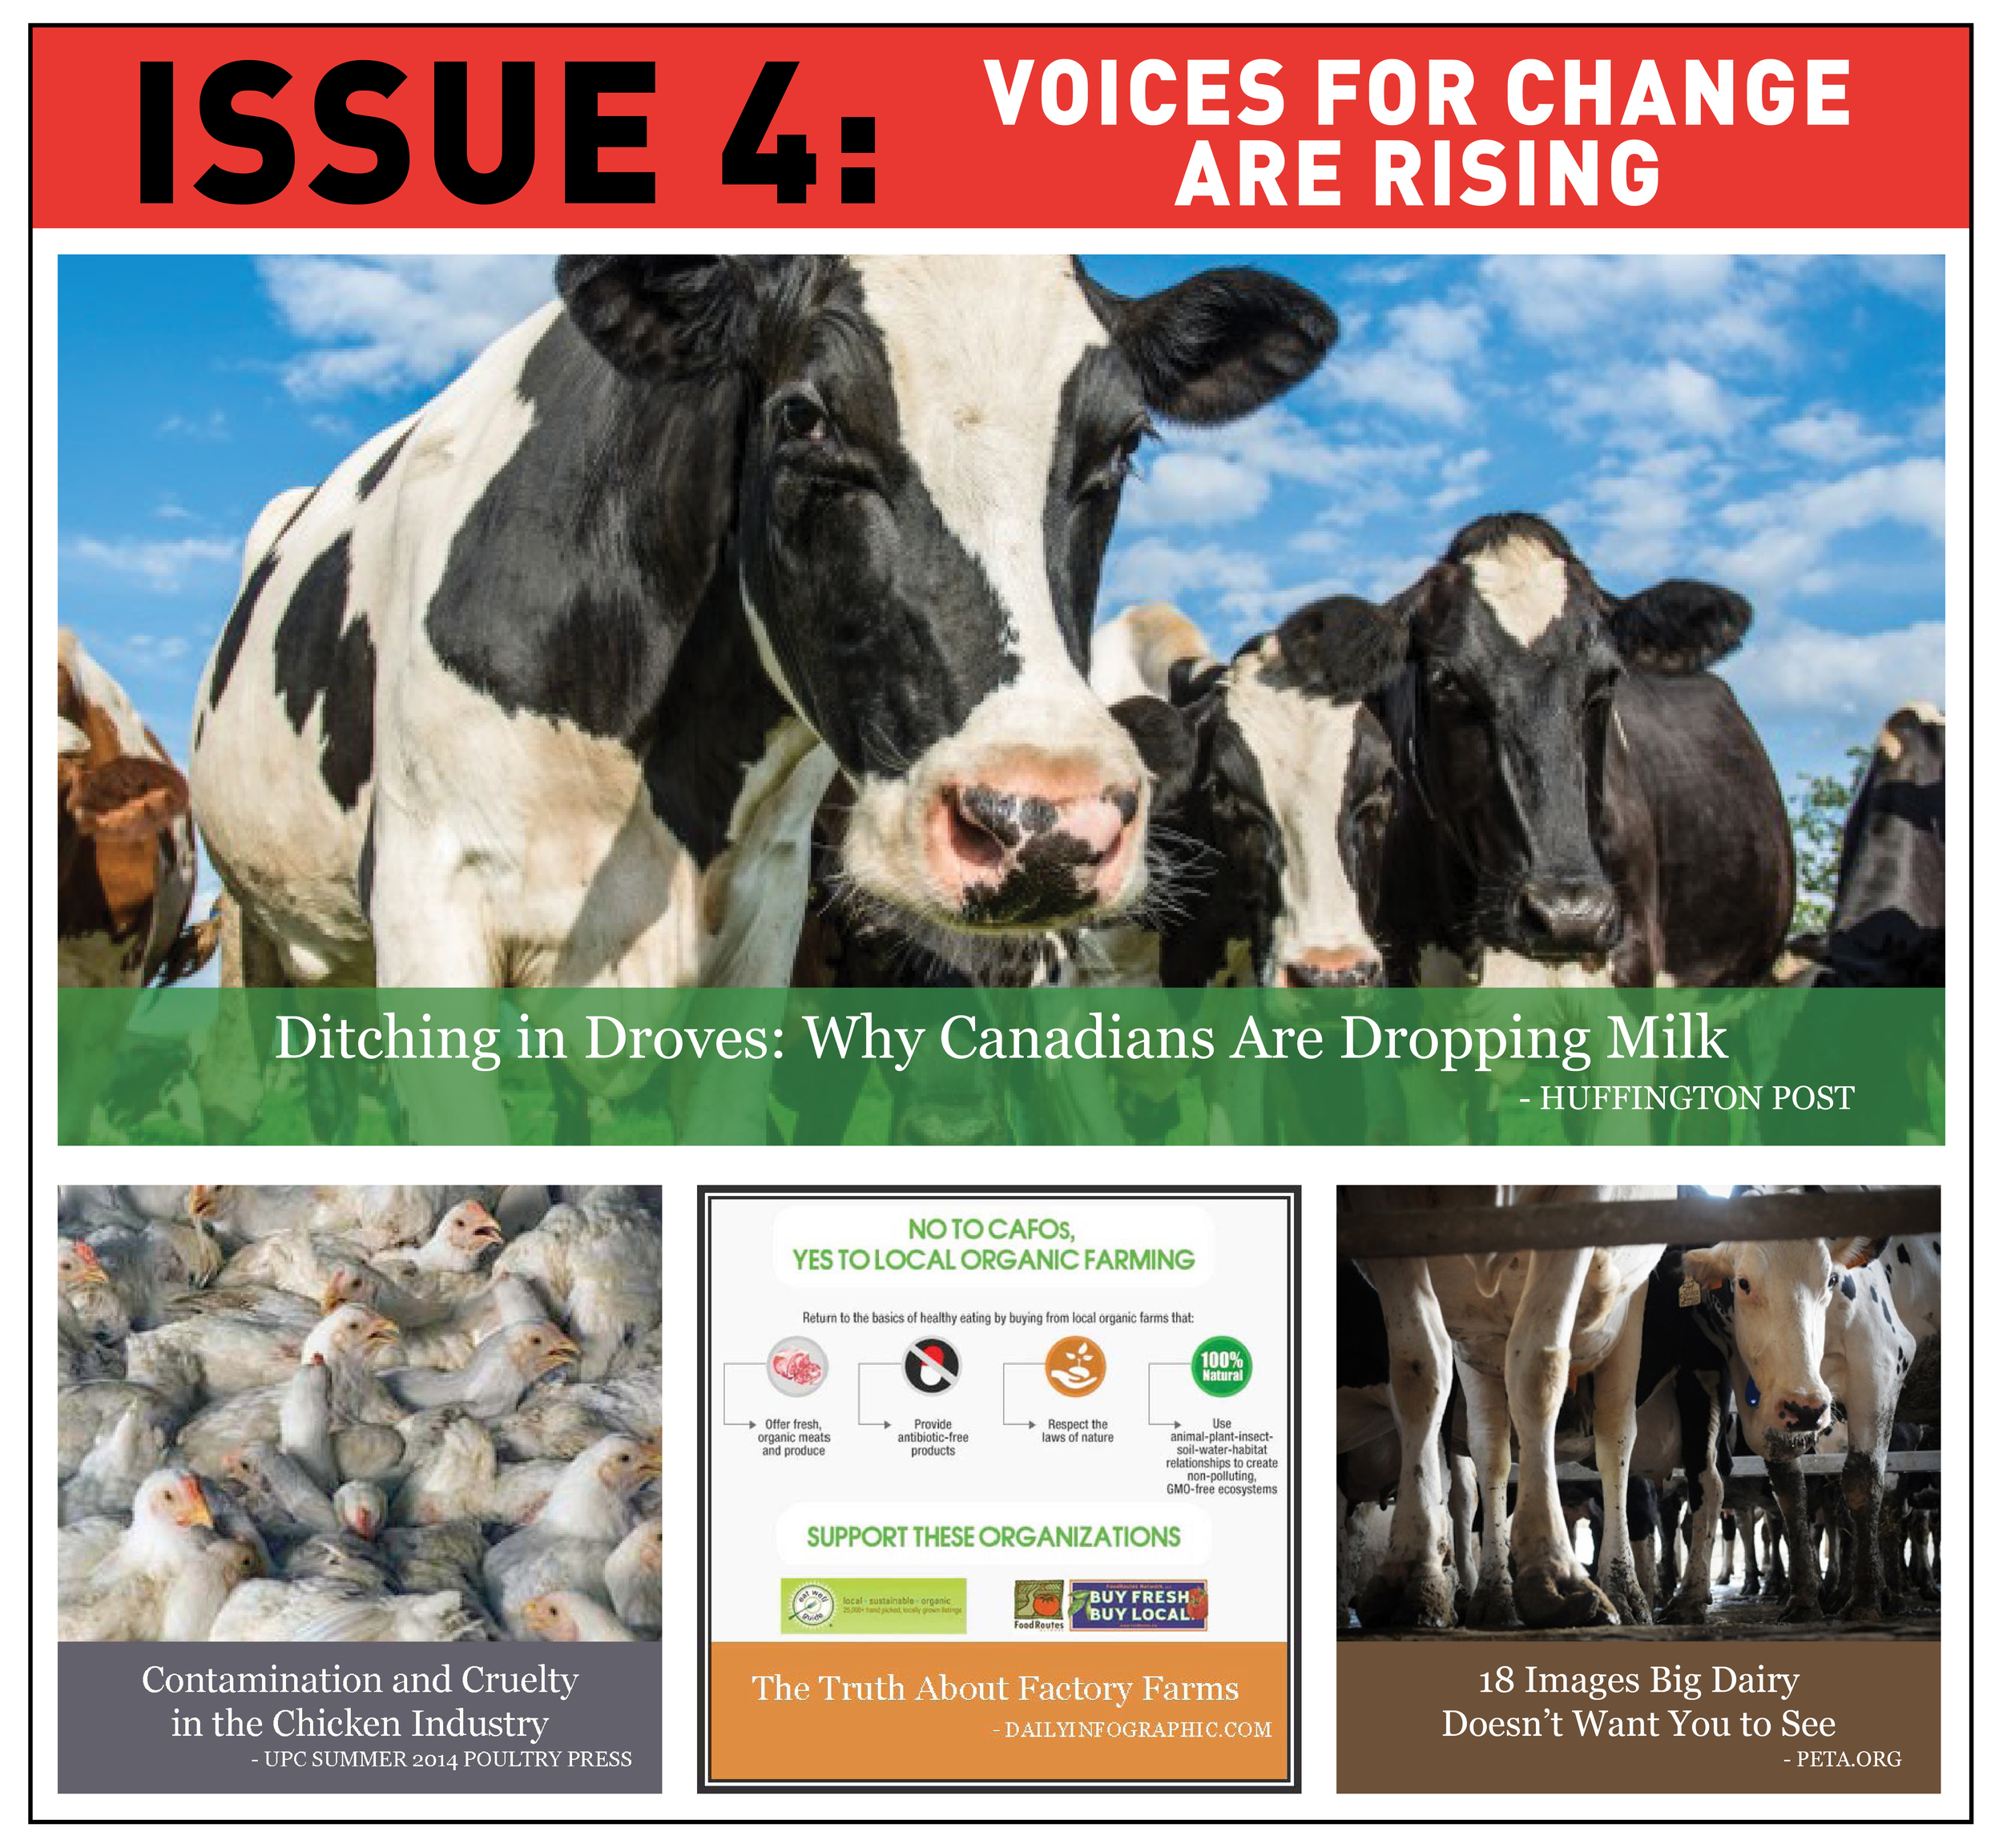 faCE Issue 4 - VOICES FOR CHANGE ARE RISING